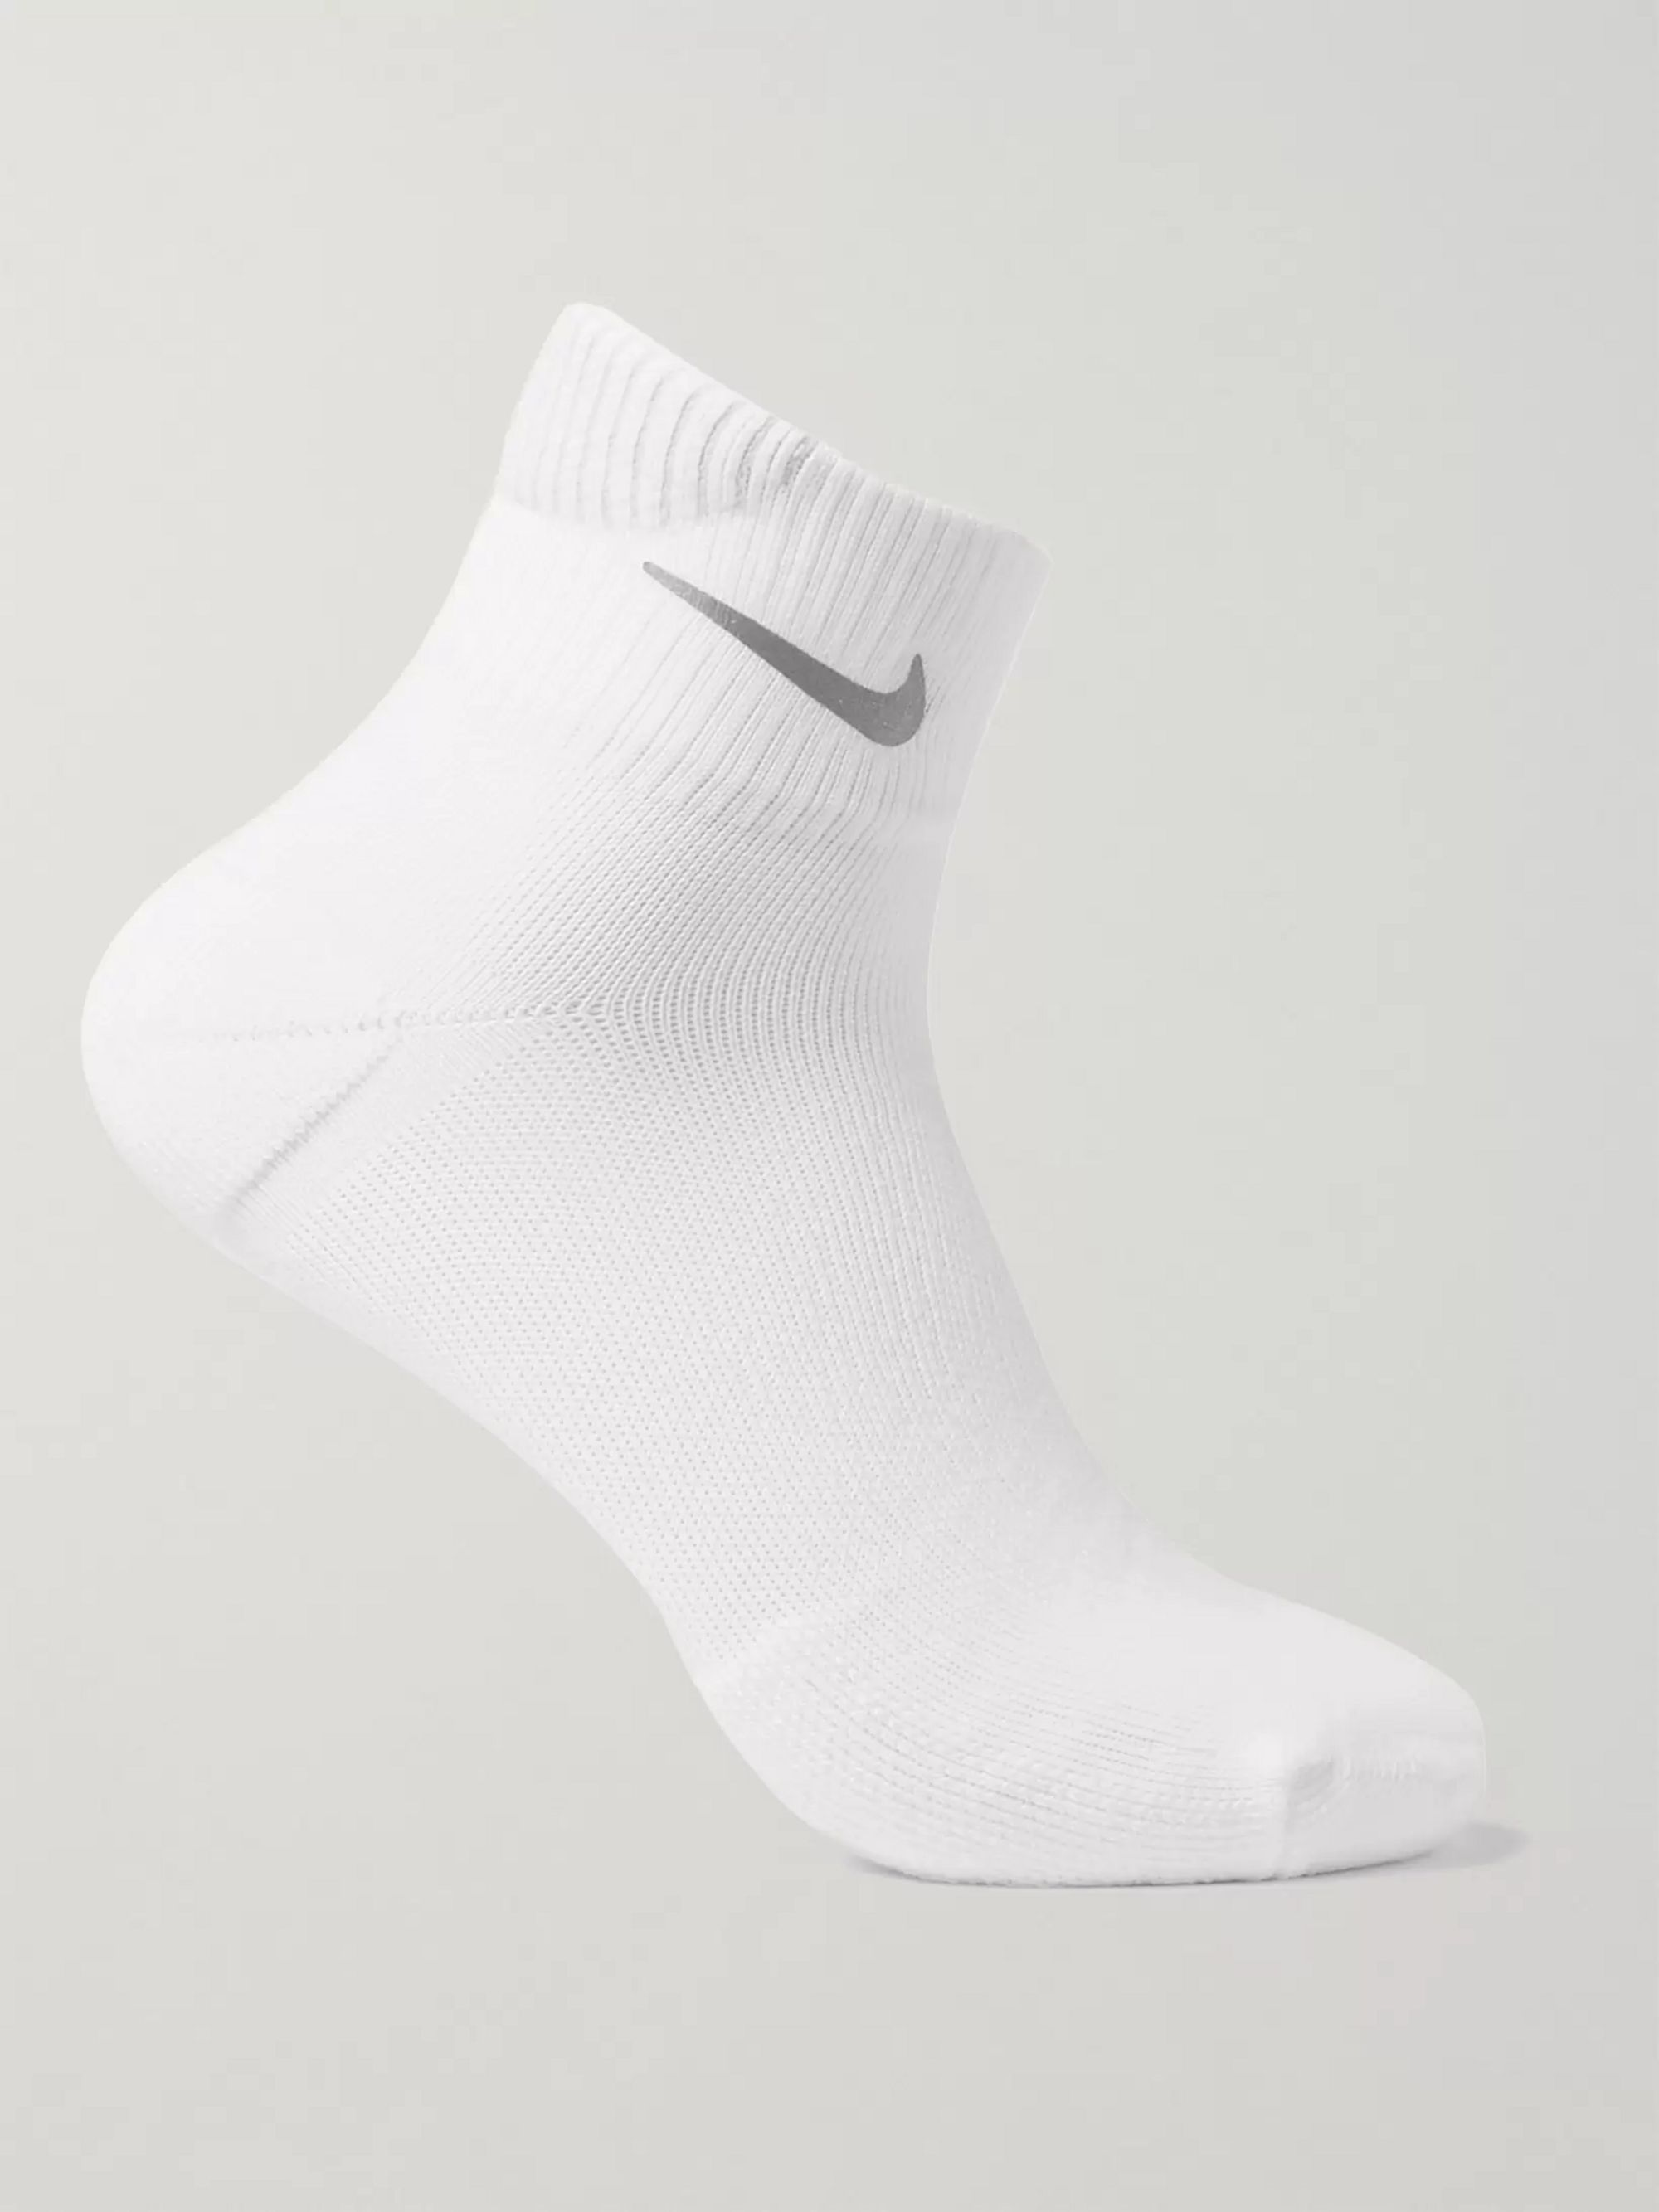 Nike Running Elite Cushioned Dri-FIT Socks